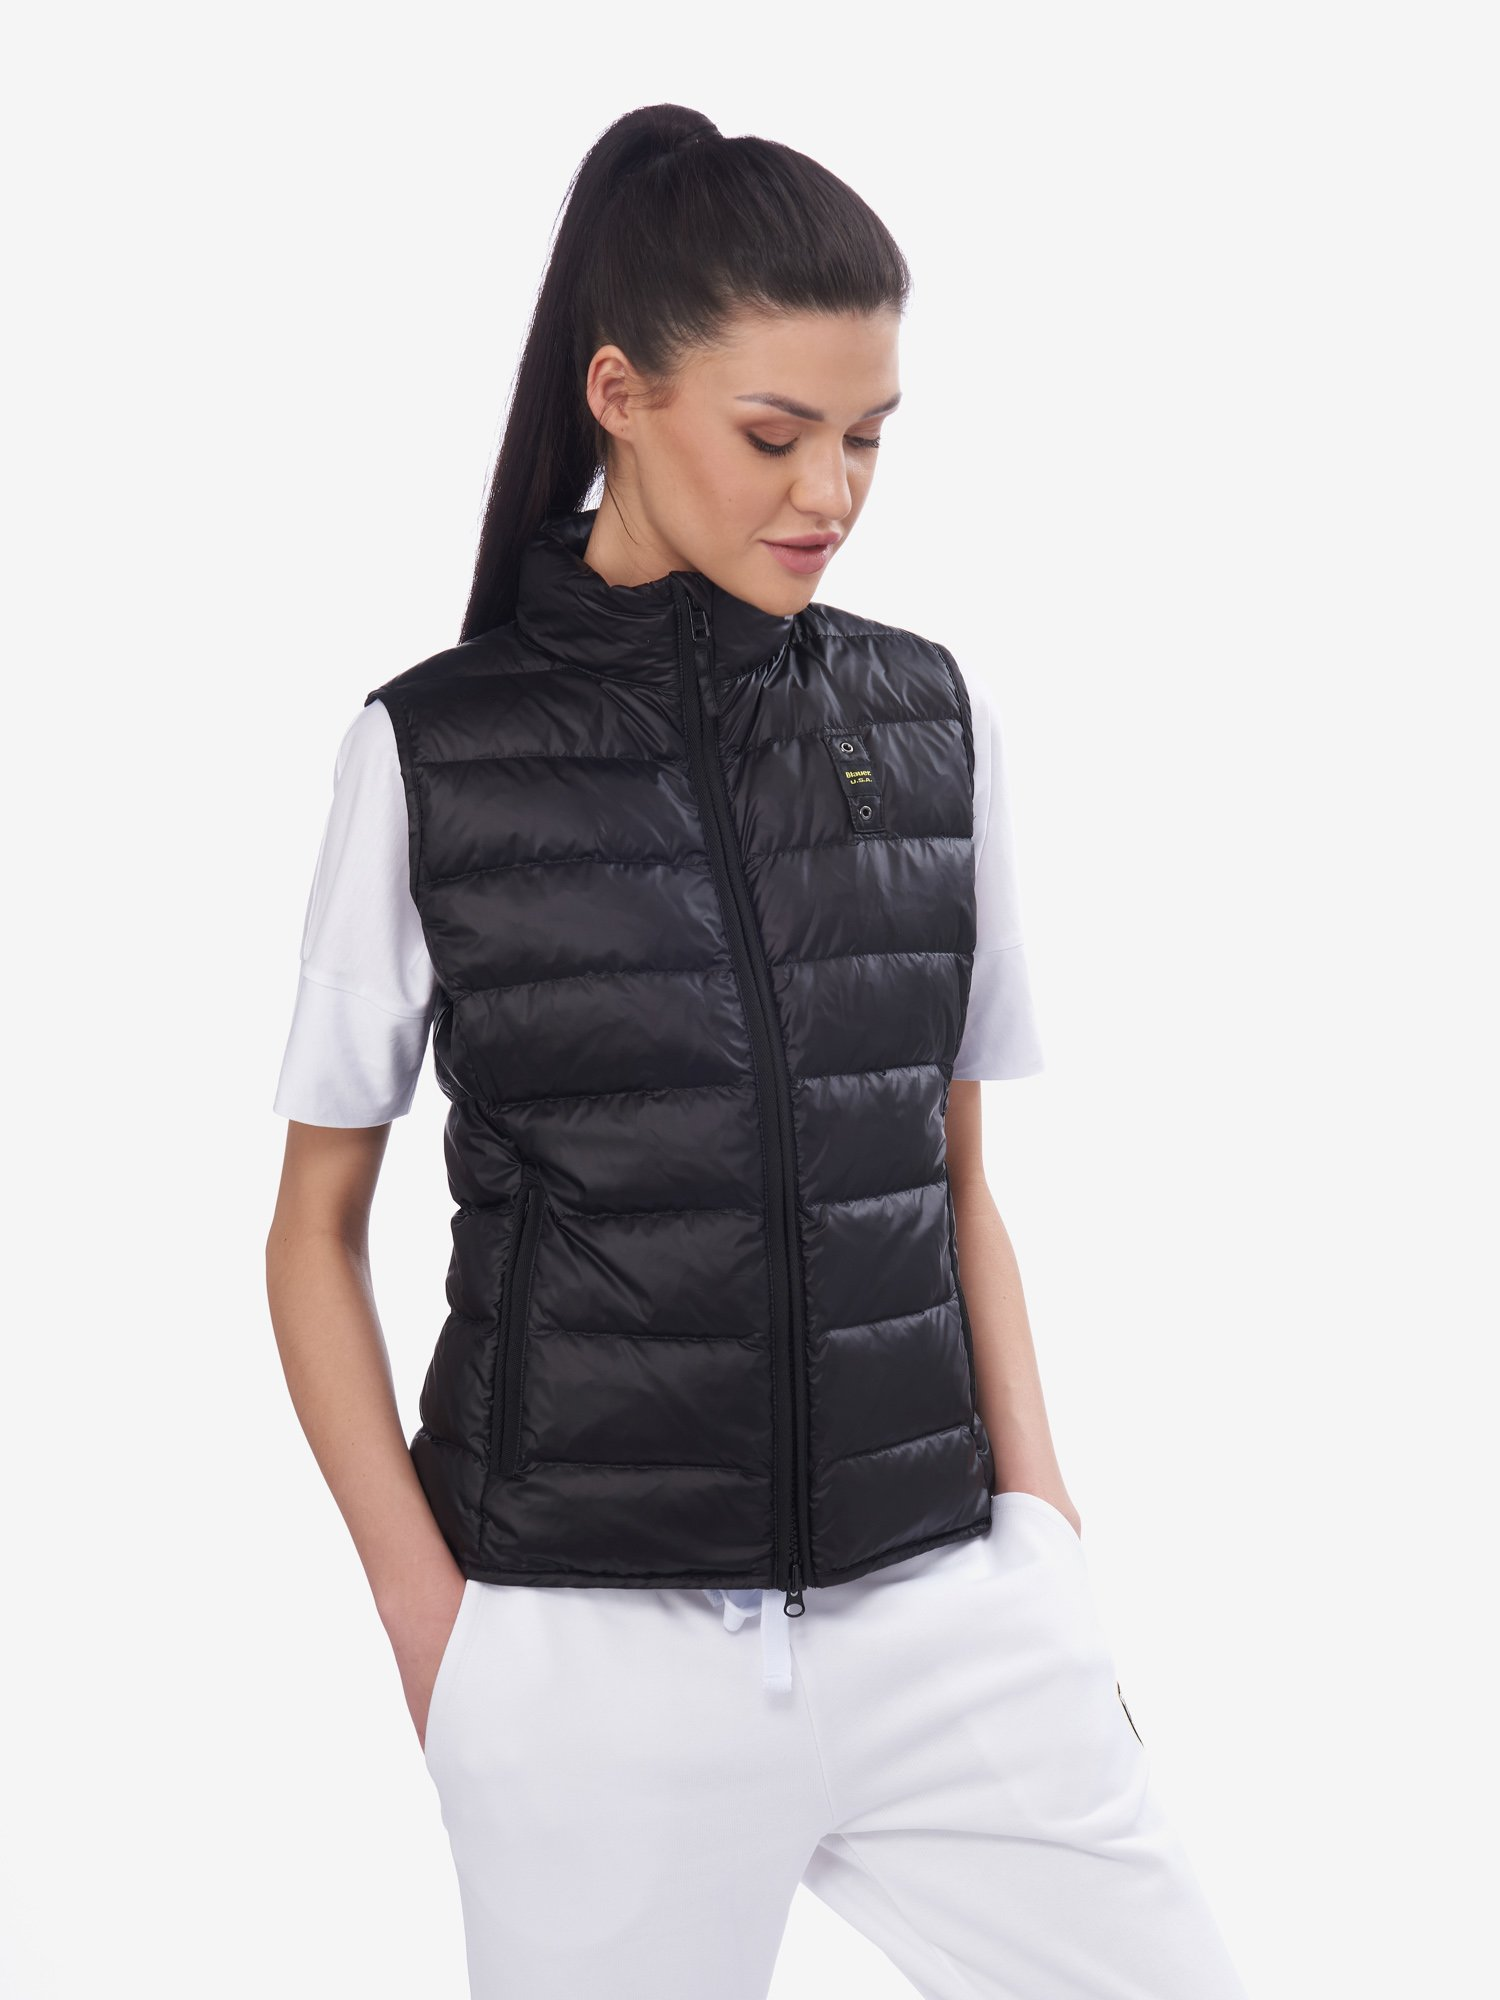 BISHOP DOWN VEST - Blauer